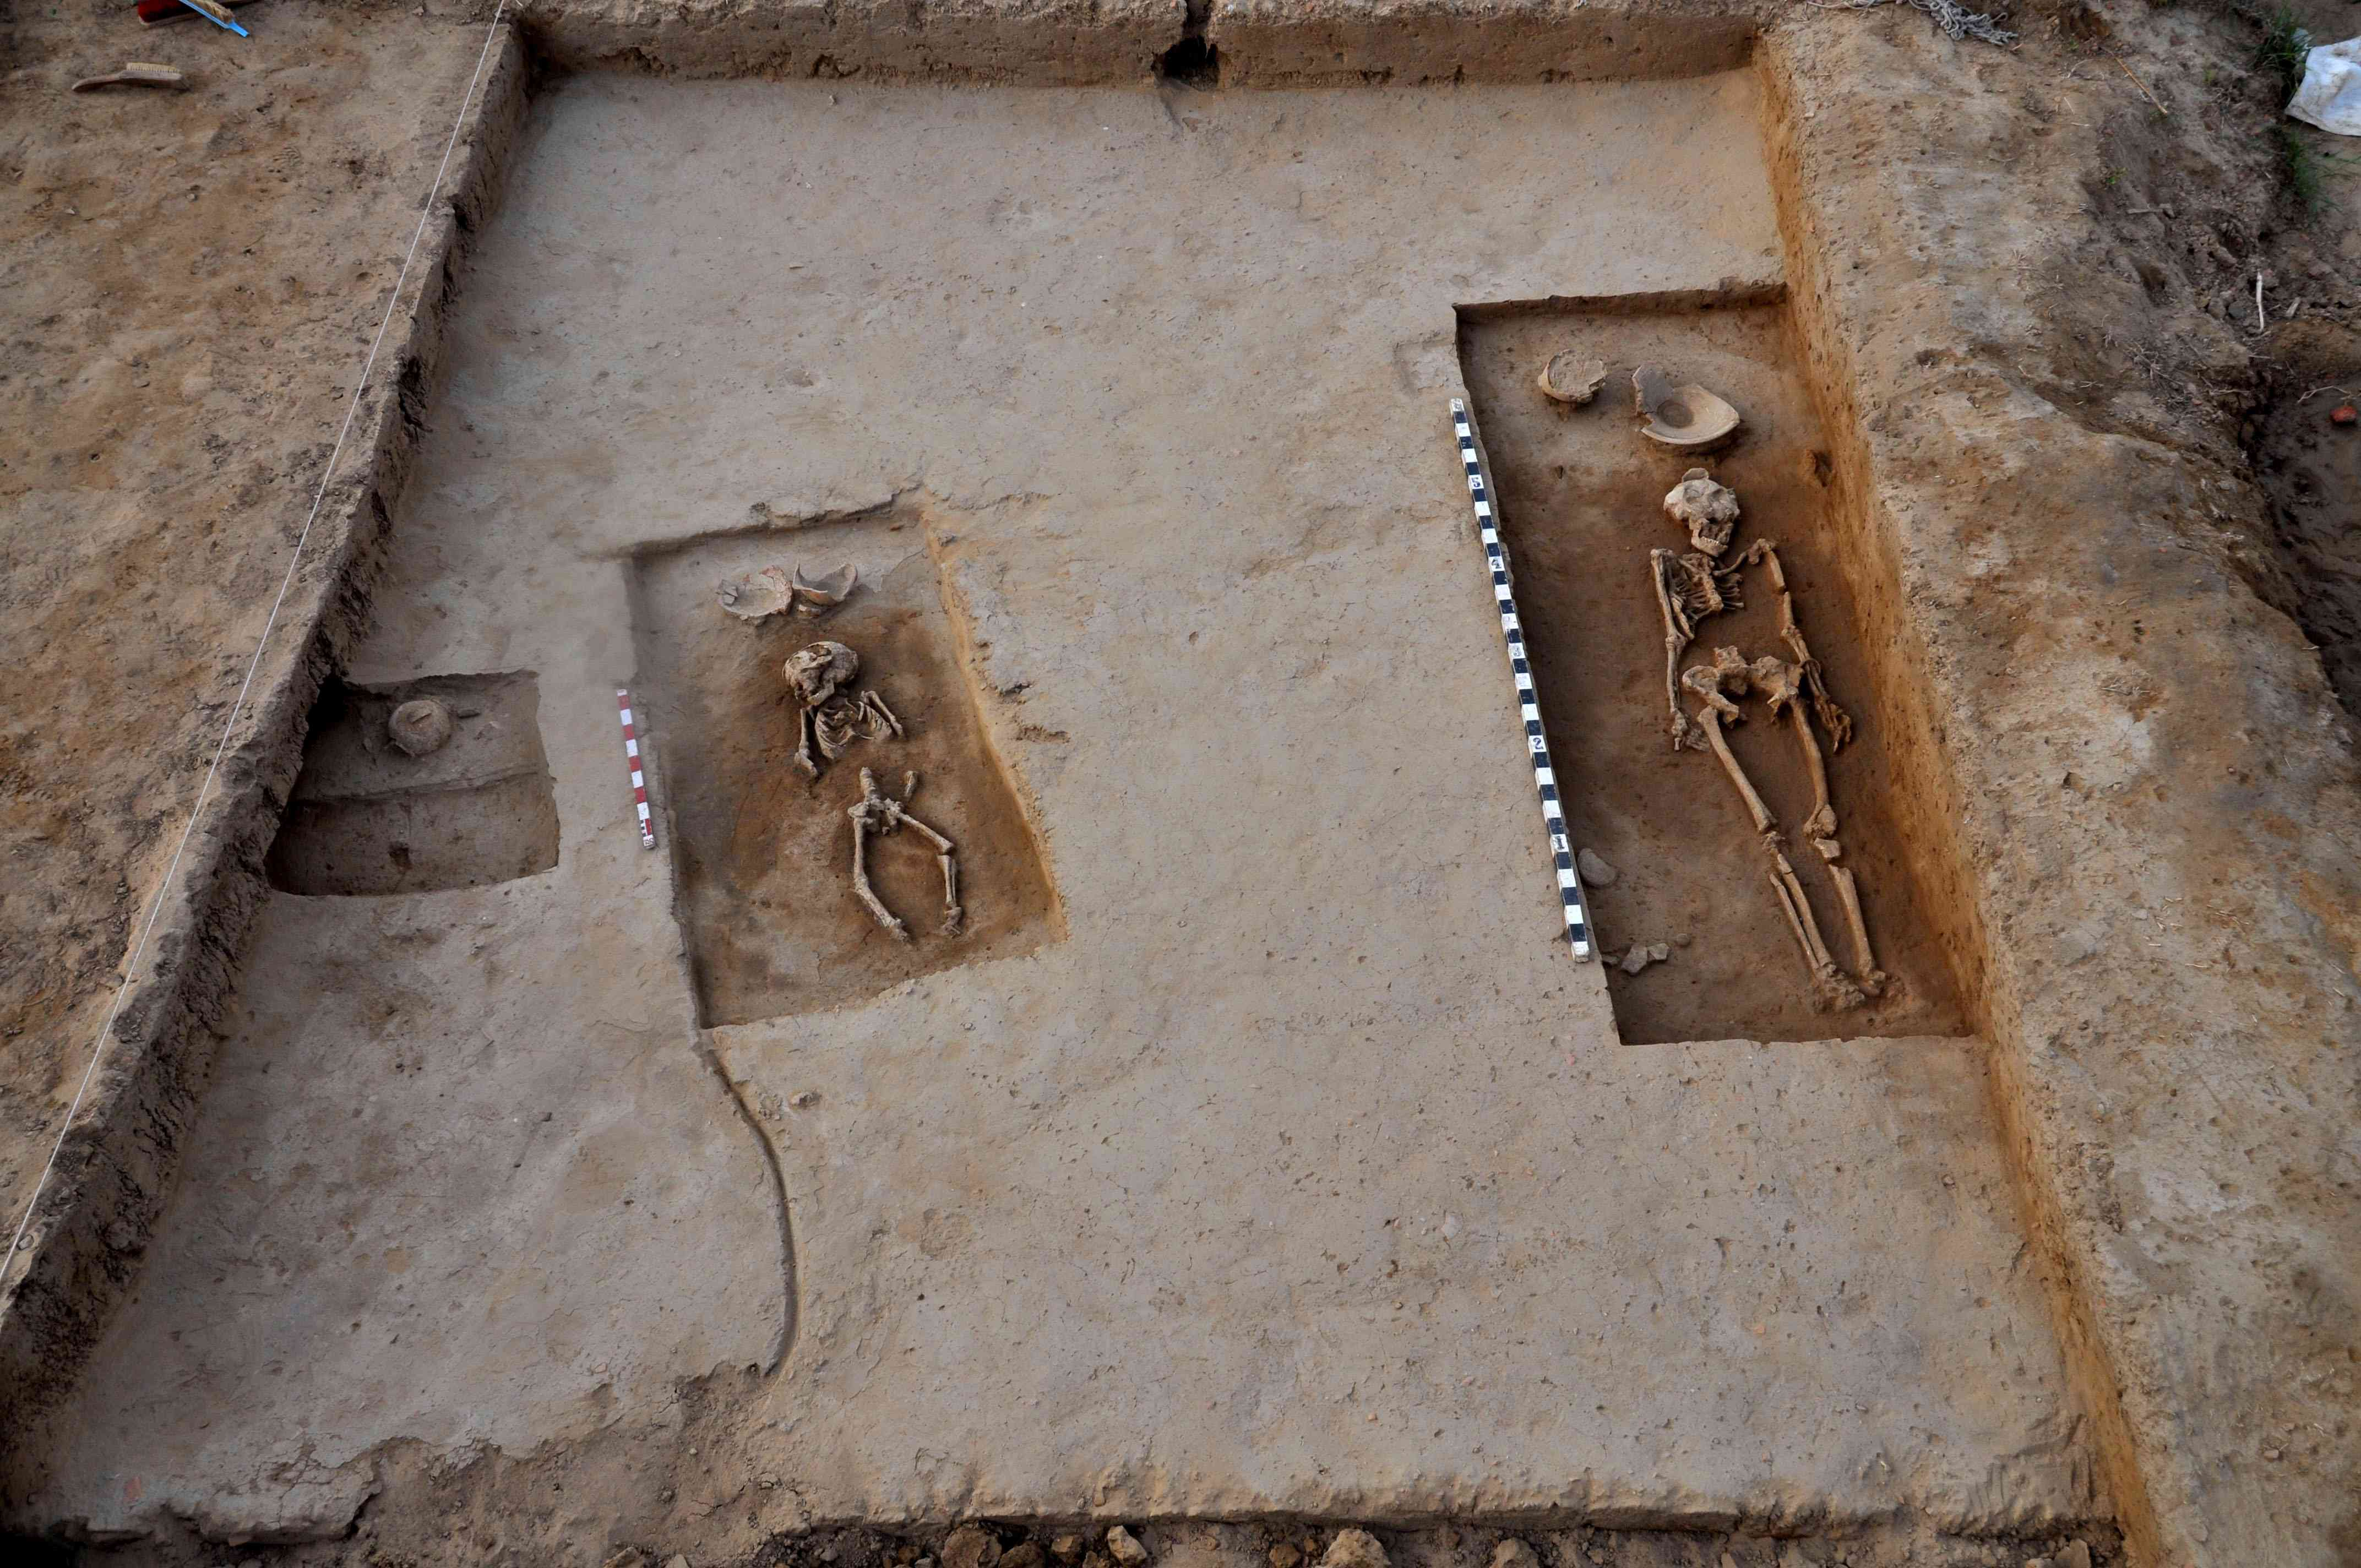 Two of four human skeletons dating back to the 5,000-year-old Harappan era, which have been recovered, are pictured at a burial mound at Rakhigarhi village in Hisar on March 11, 2015. Four complete human skeletons – two men, one woman and a child – were found. (Photo credit: Manoh Dhaka/AFP)